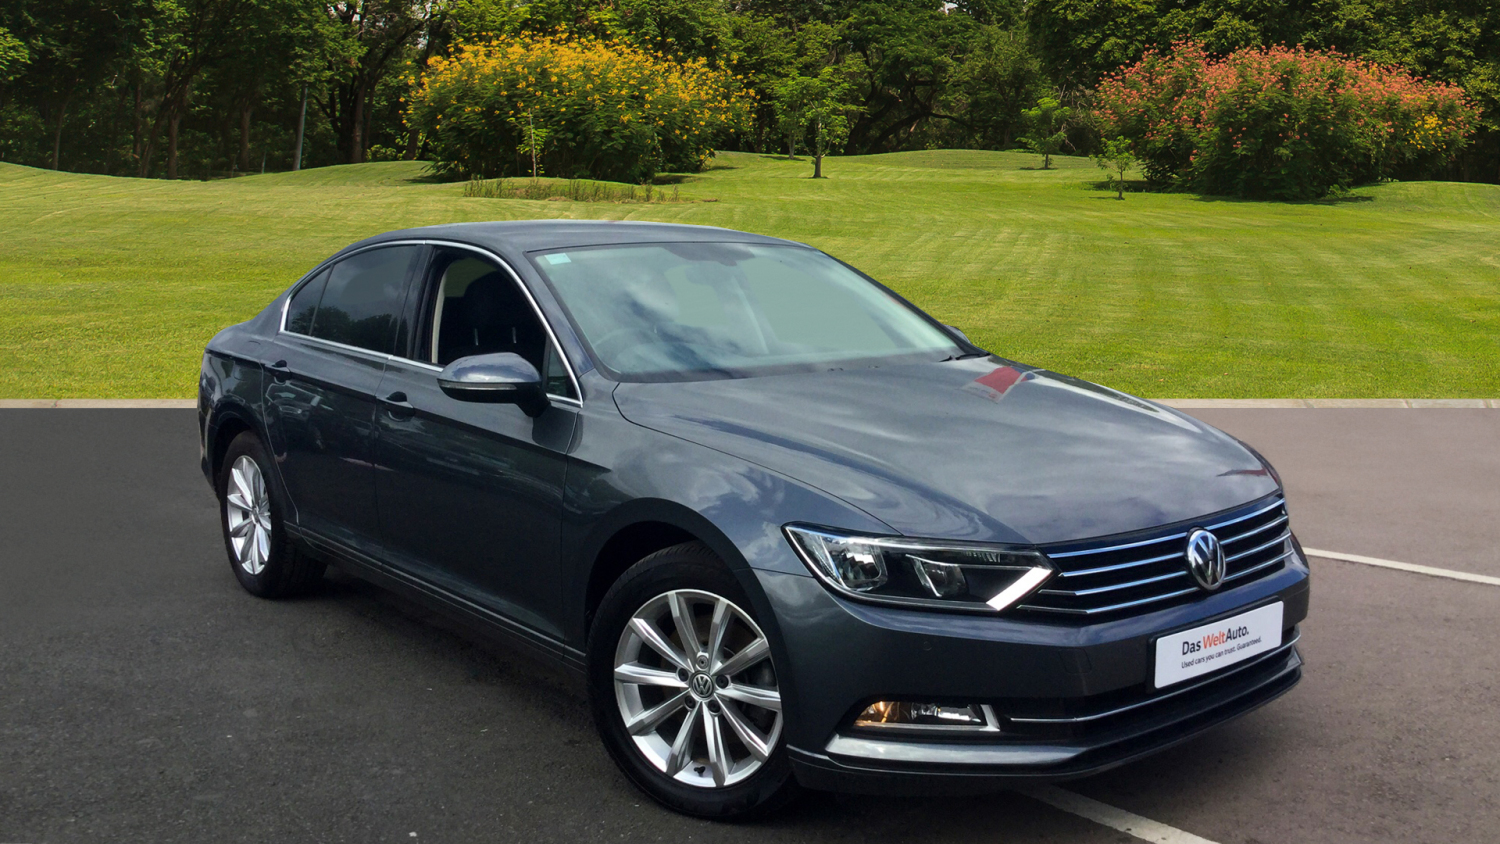 used volkswagen passat 2 0 tdi se business 4dr dsg diesel saloon for sale vertu honda. Black Bedroom Furniture Sets. Home Design Ideas